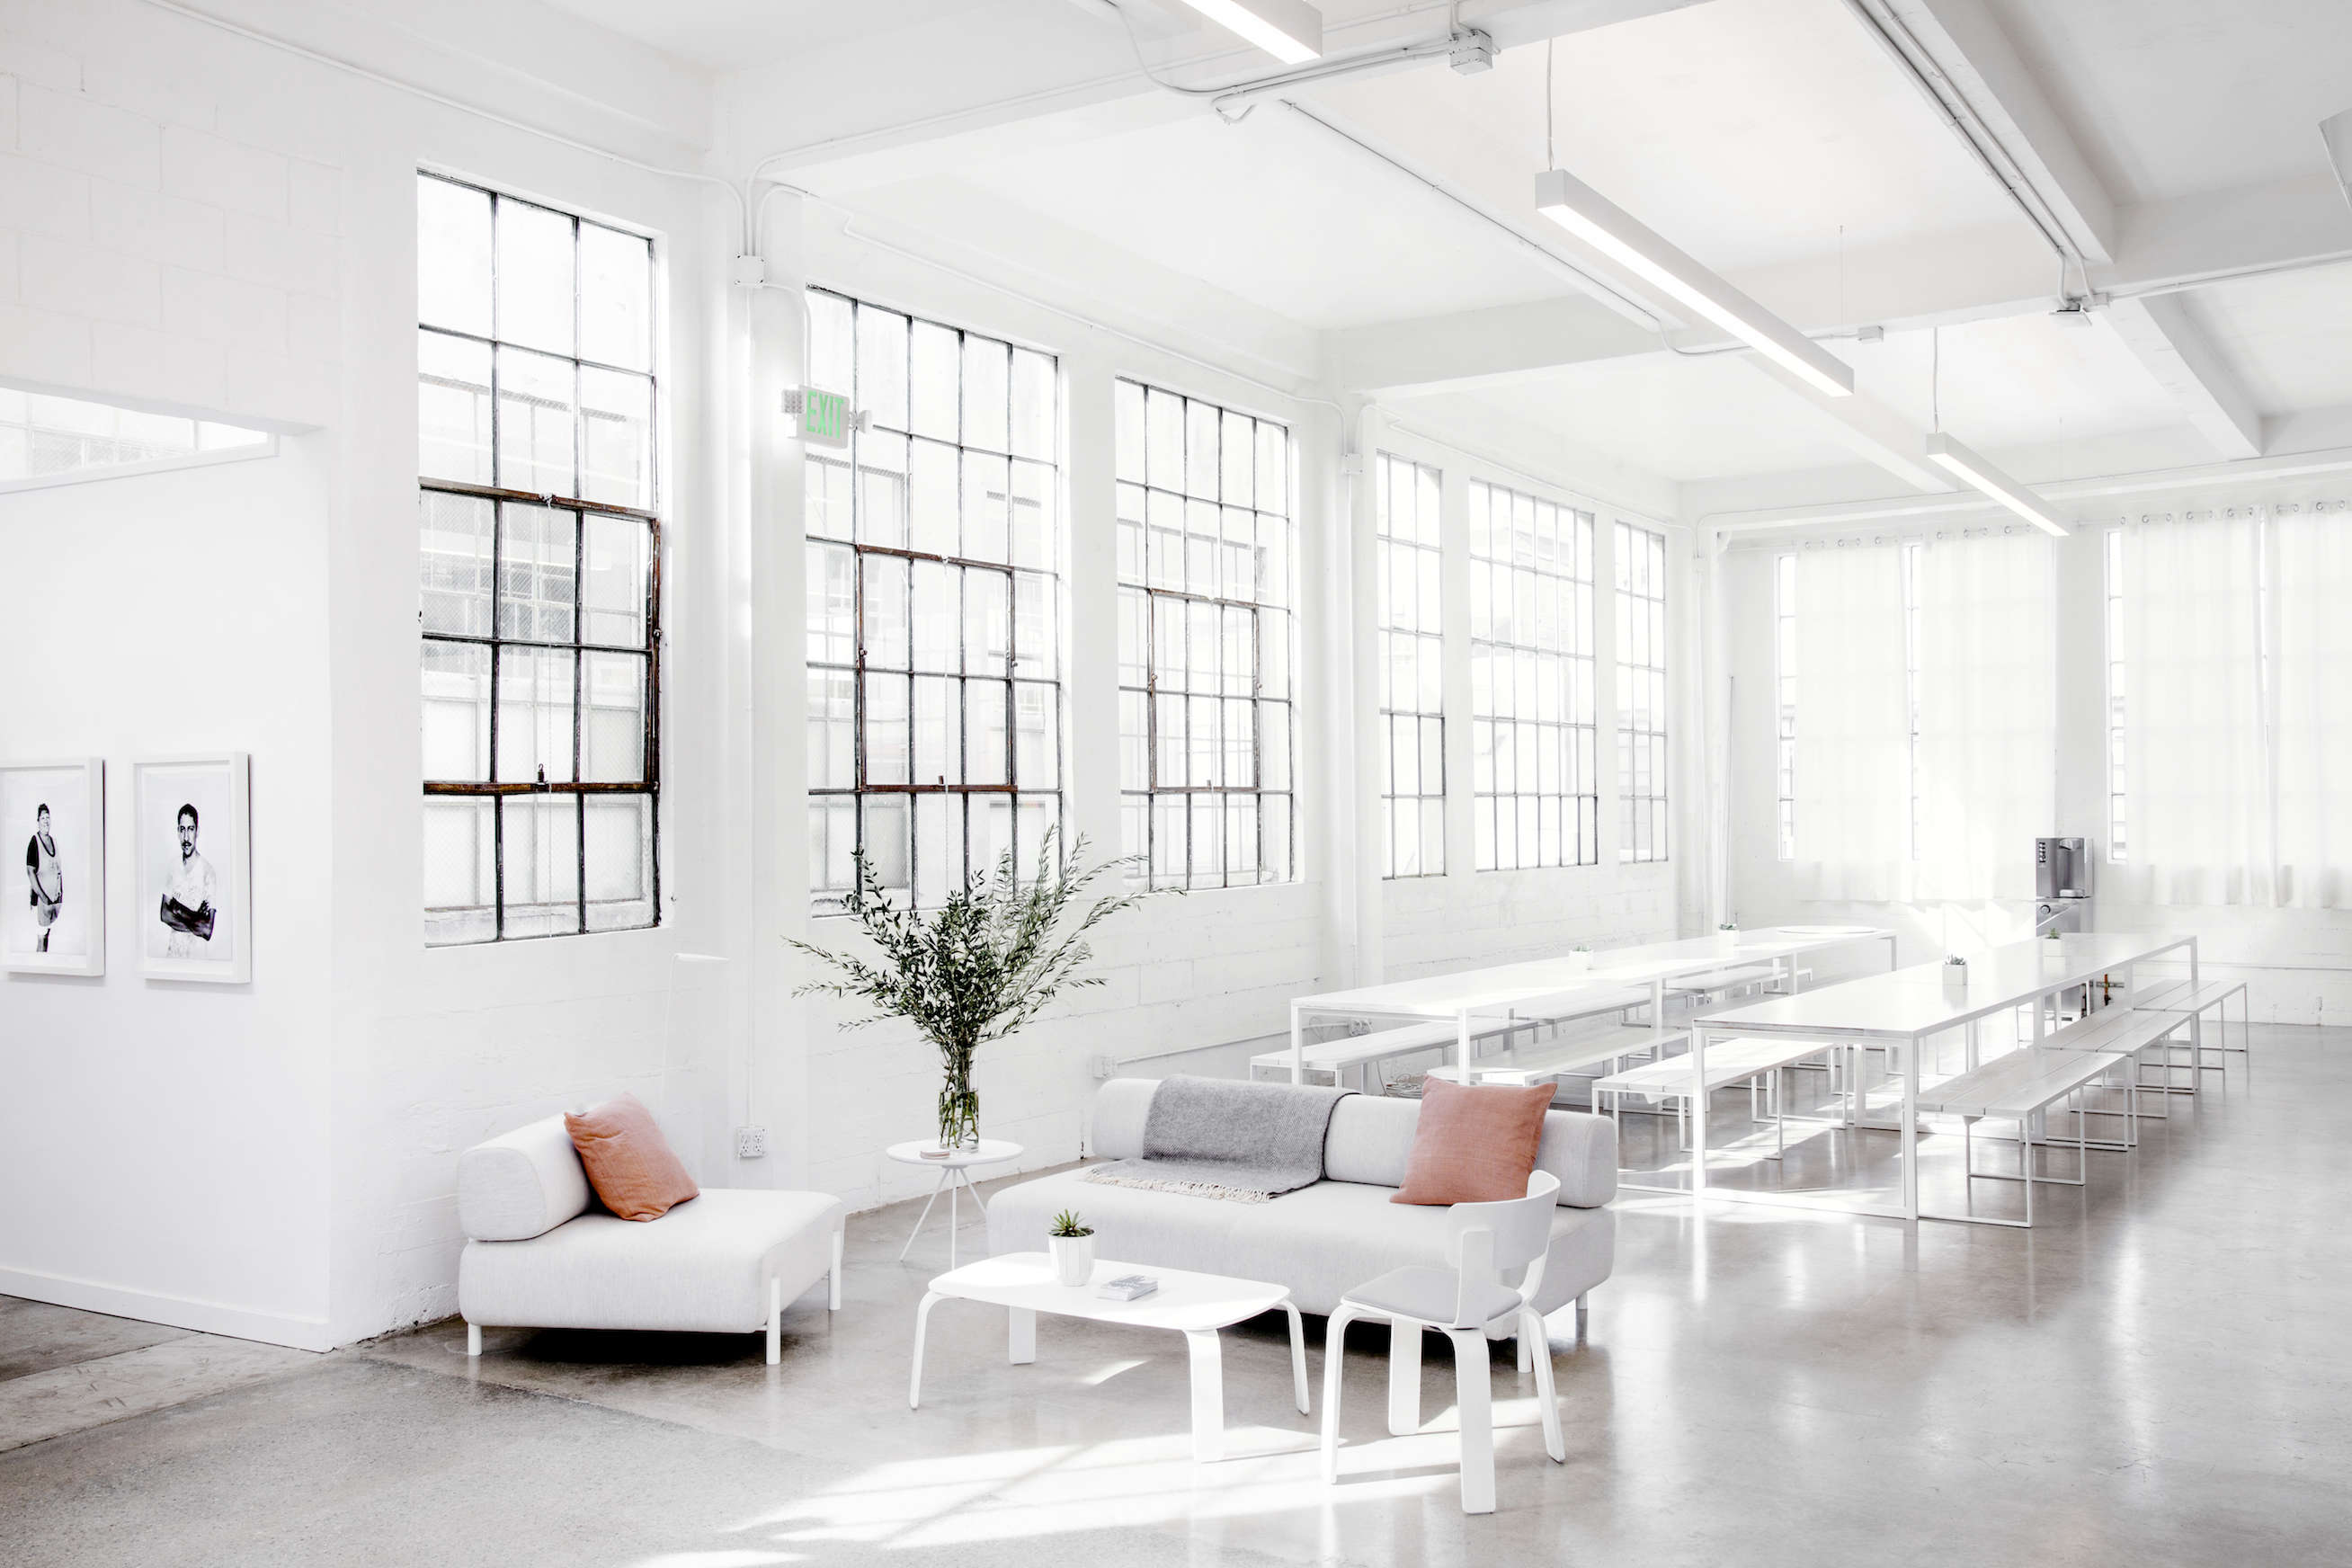 Picnic dining area in Everlane's lofty white office in SF, Carlos Chavarría photo | Remodelista